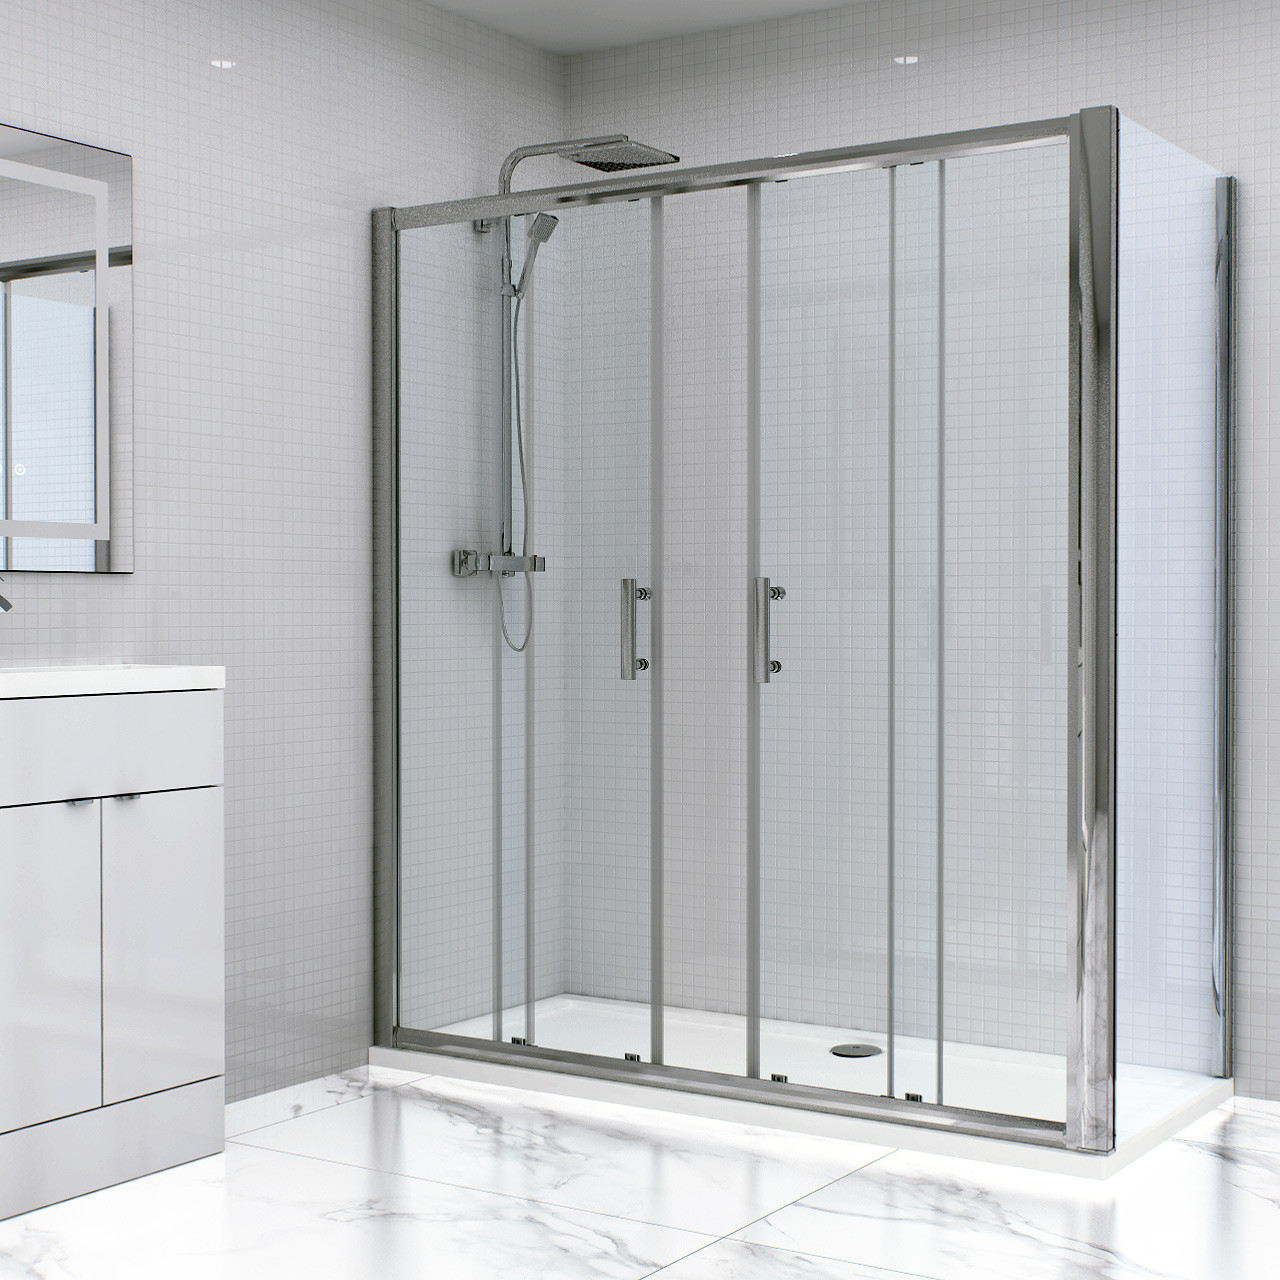 Series 6 1700mm x 760mm Double Sliding Door Shower Enclosure